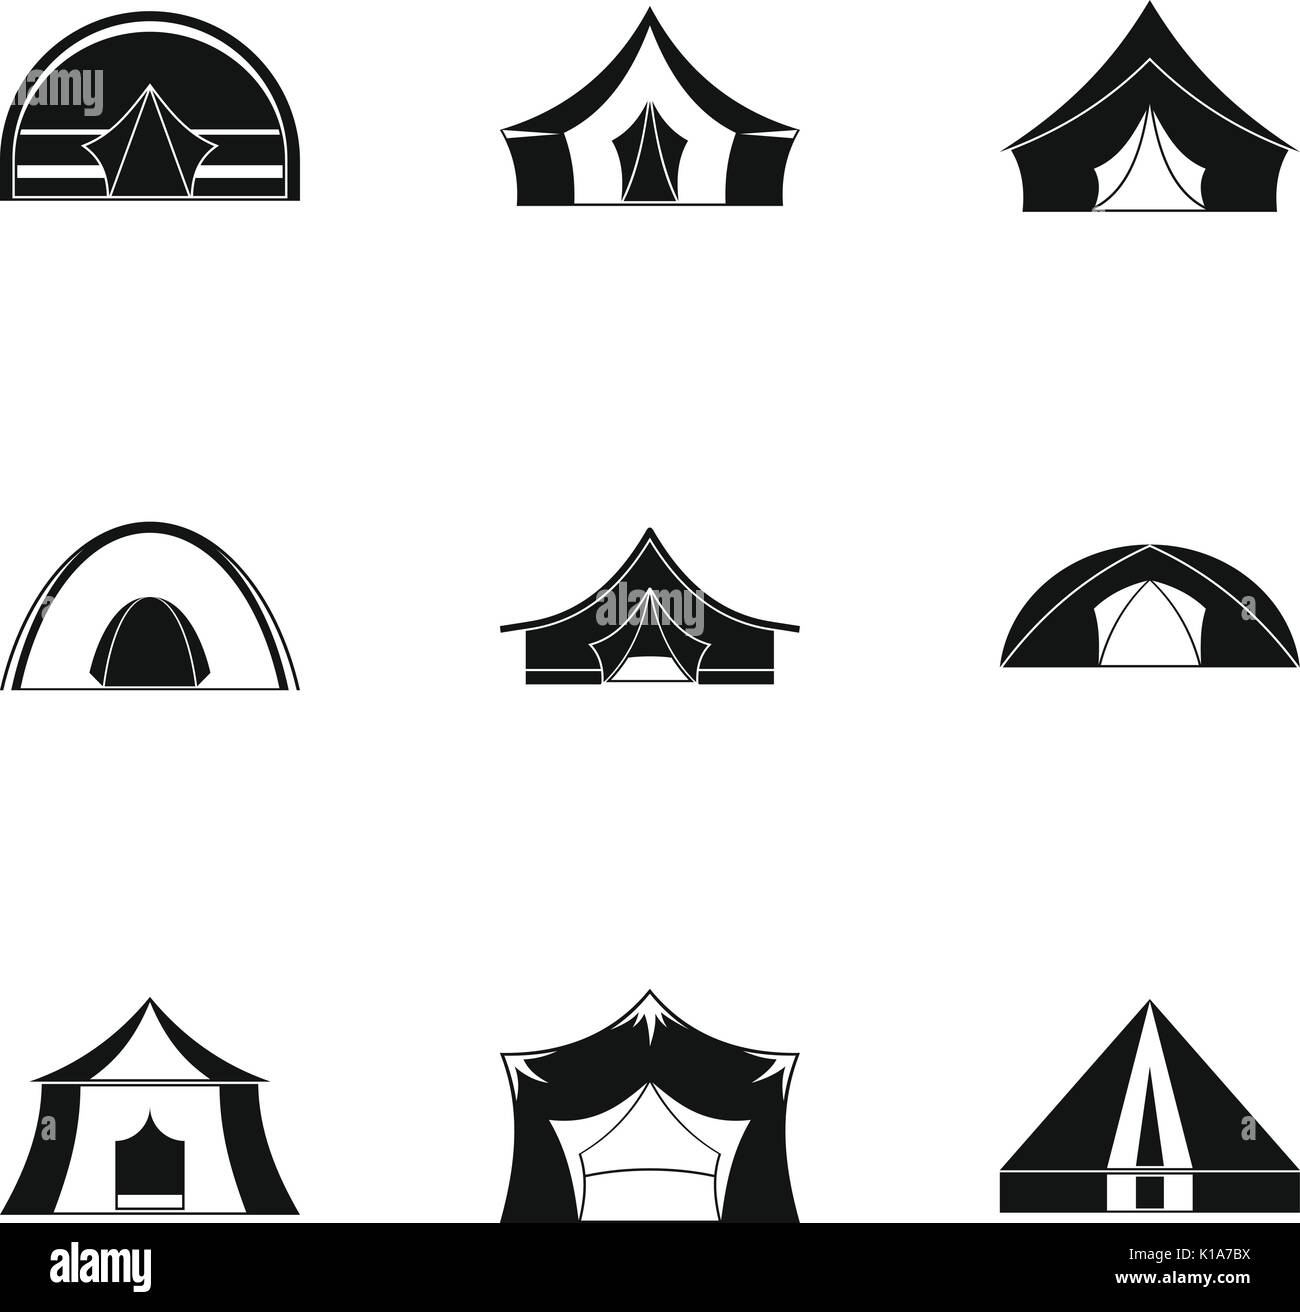 Travel tent form icon set, simple style Stock Vector Art